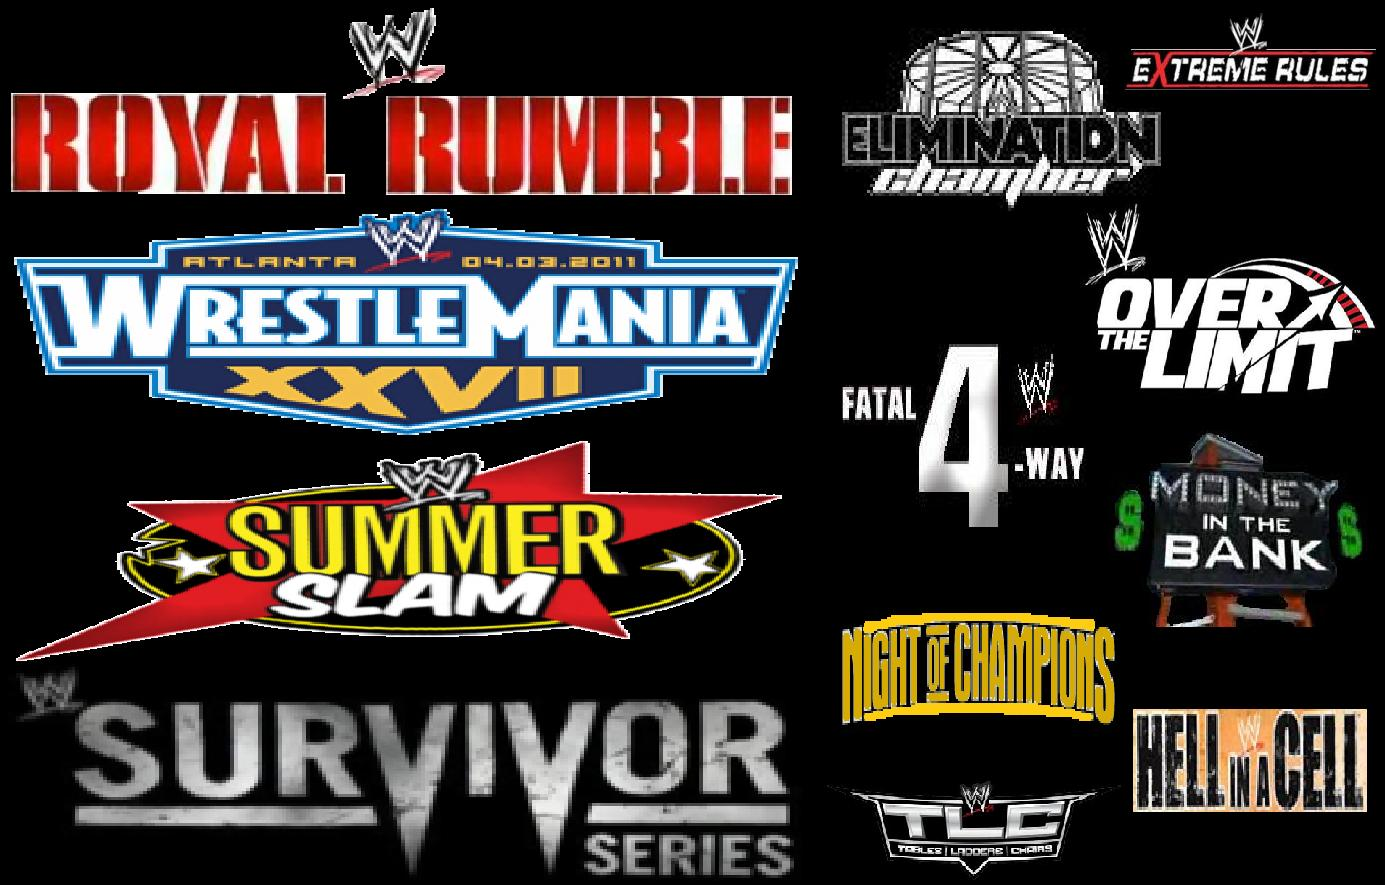 Wwe Pay Per View Schedule 2015 | Examples and Forms